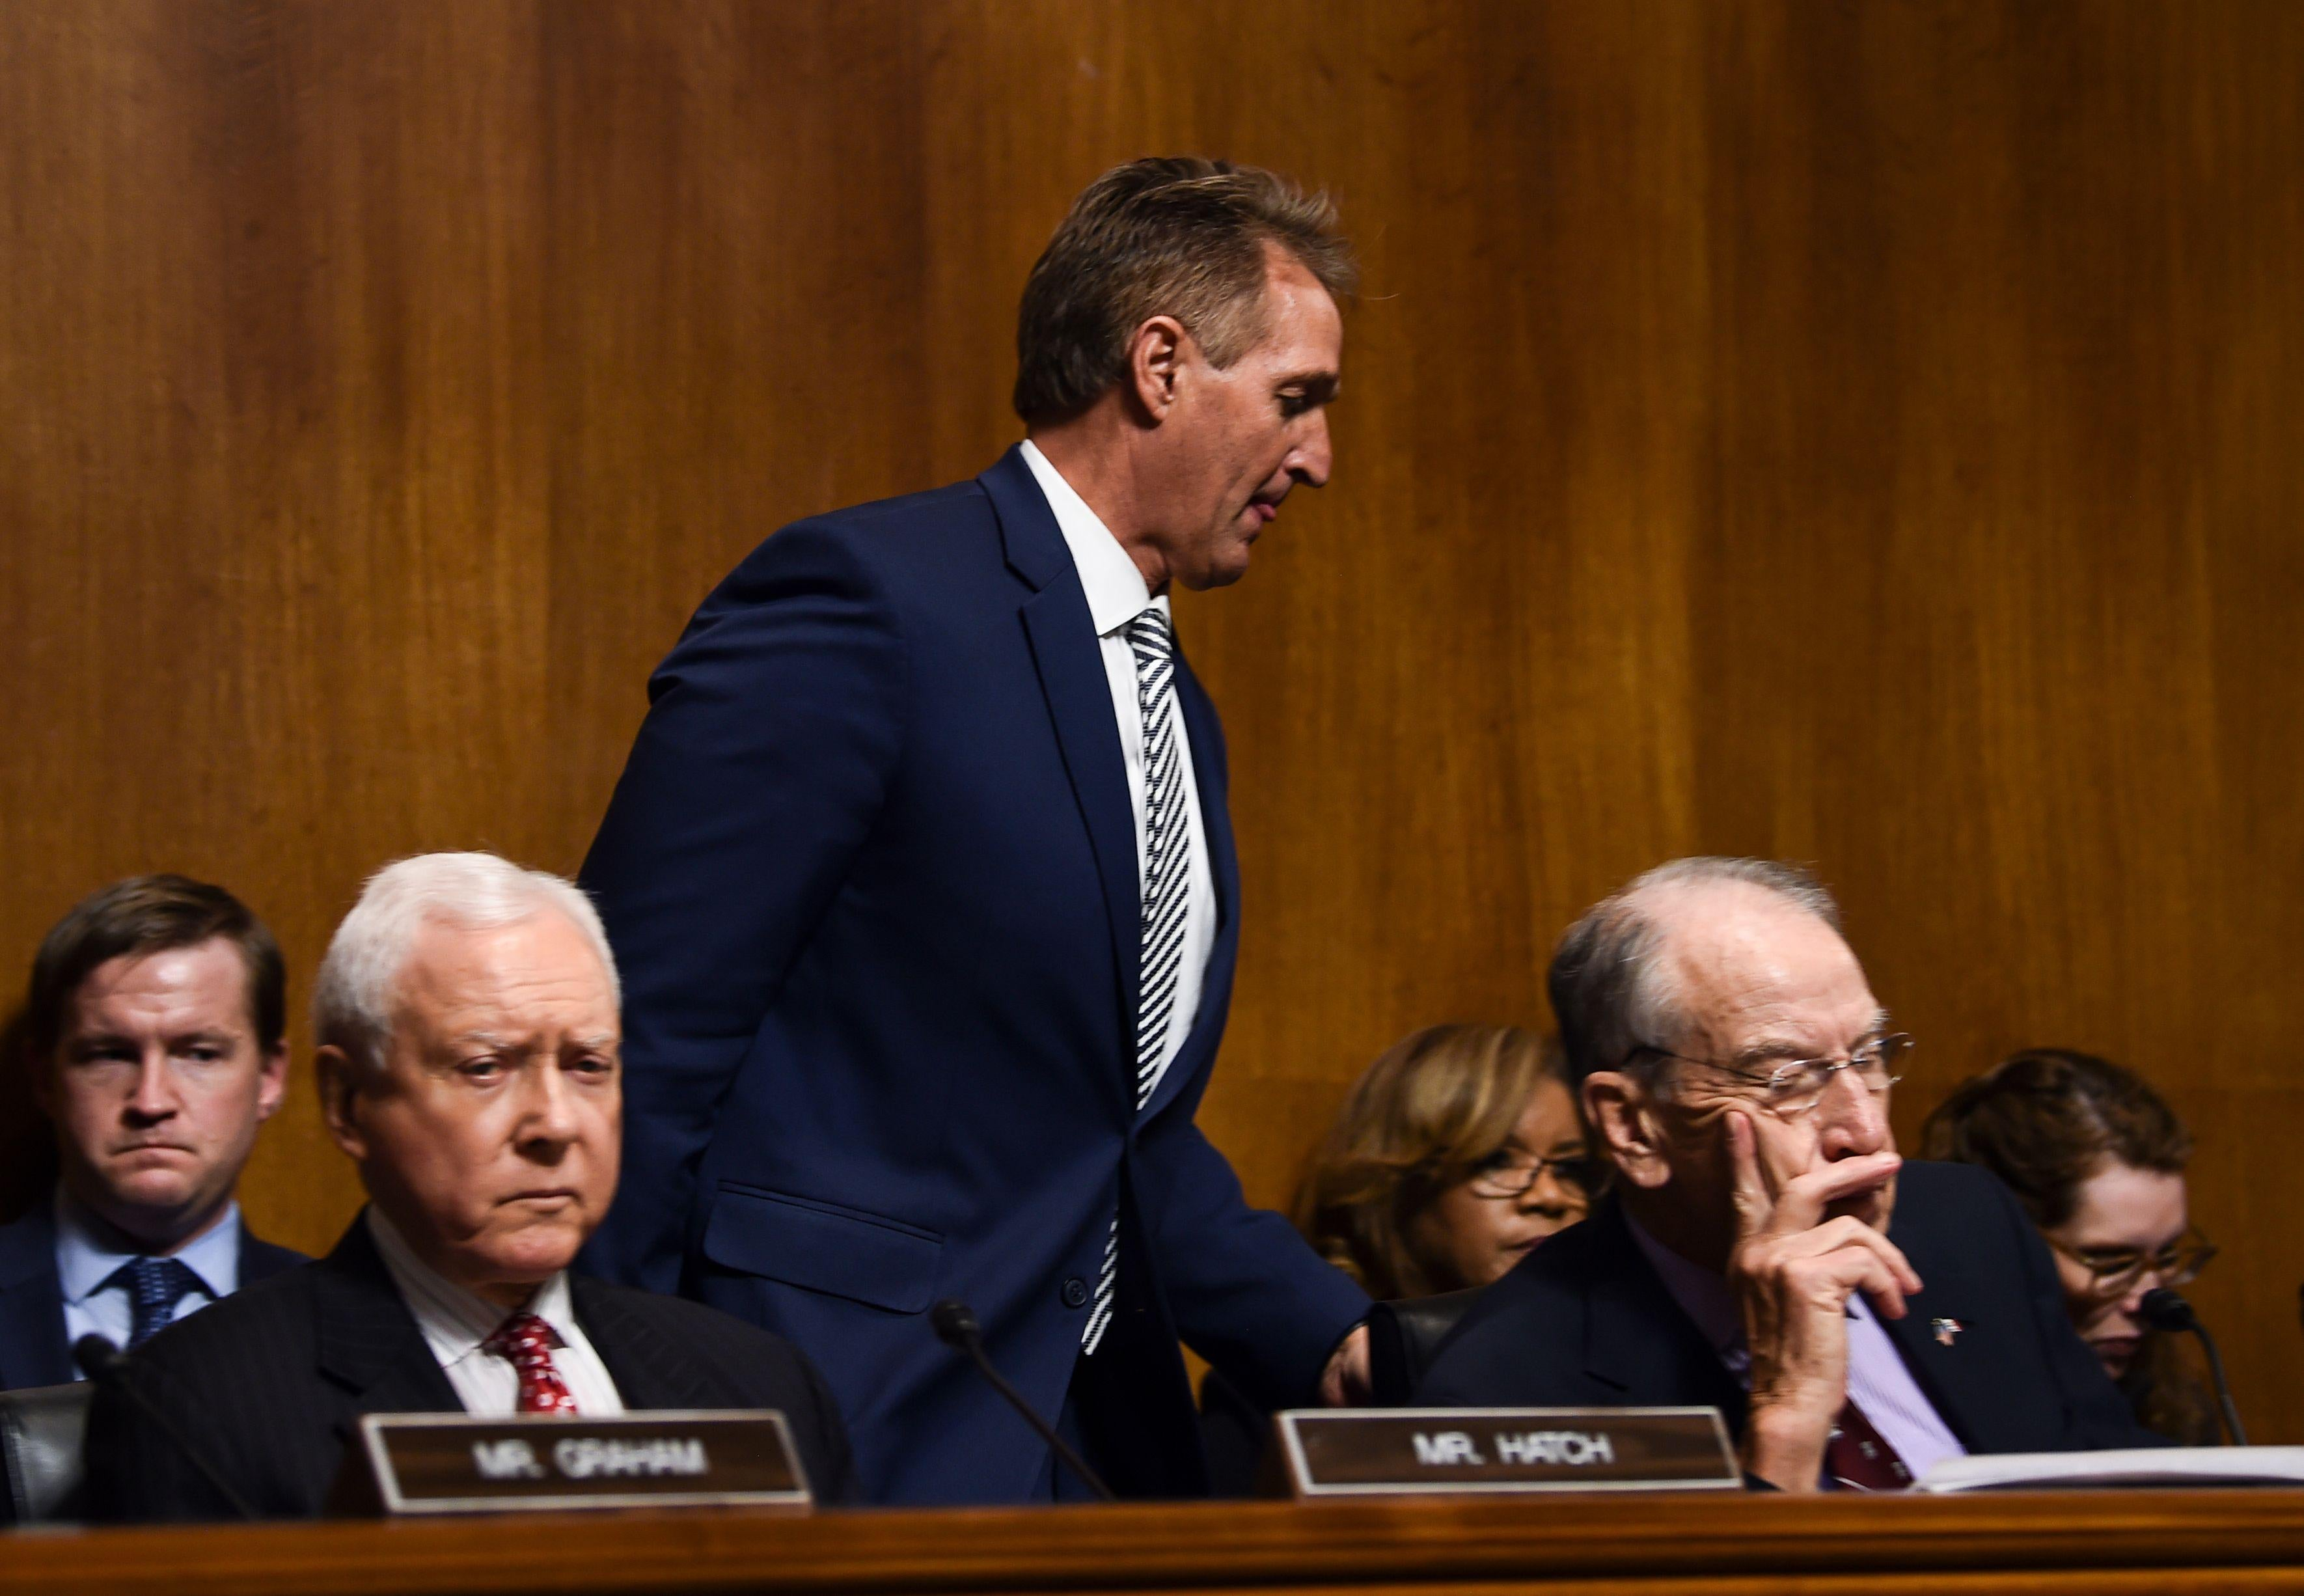 Jeff Flake walks out during a hearing on Brett Kavanaugh's nomination.